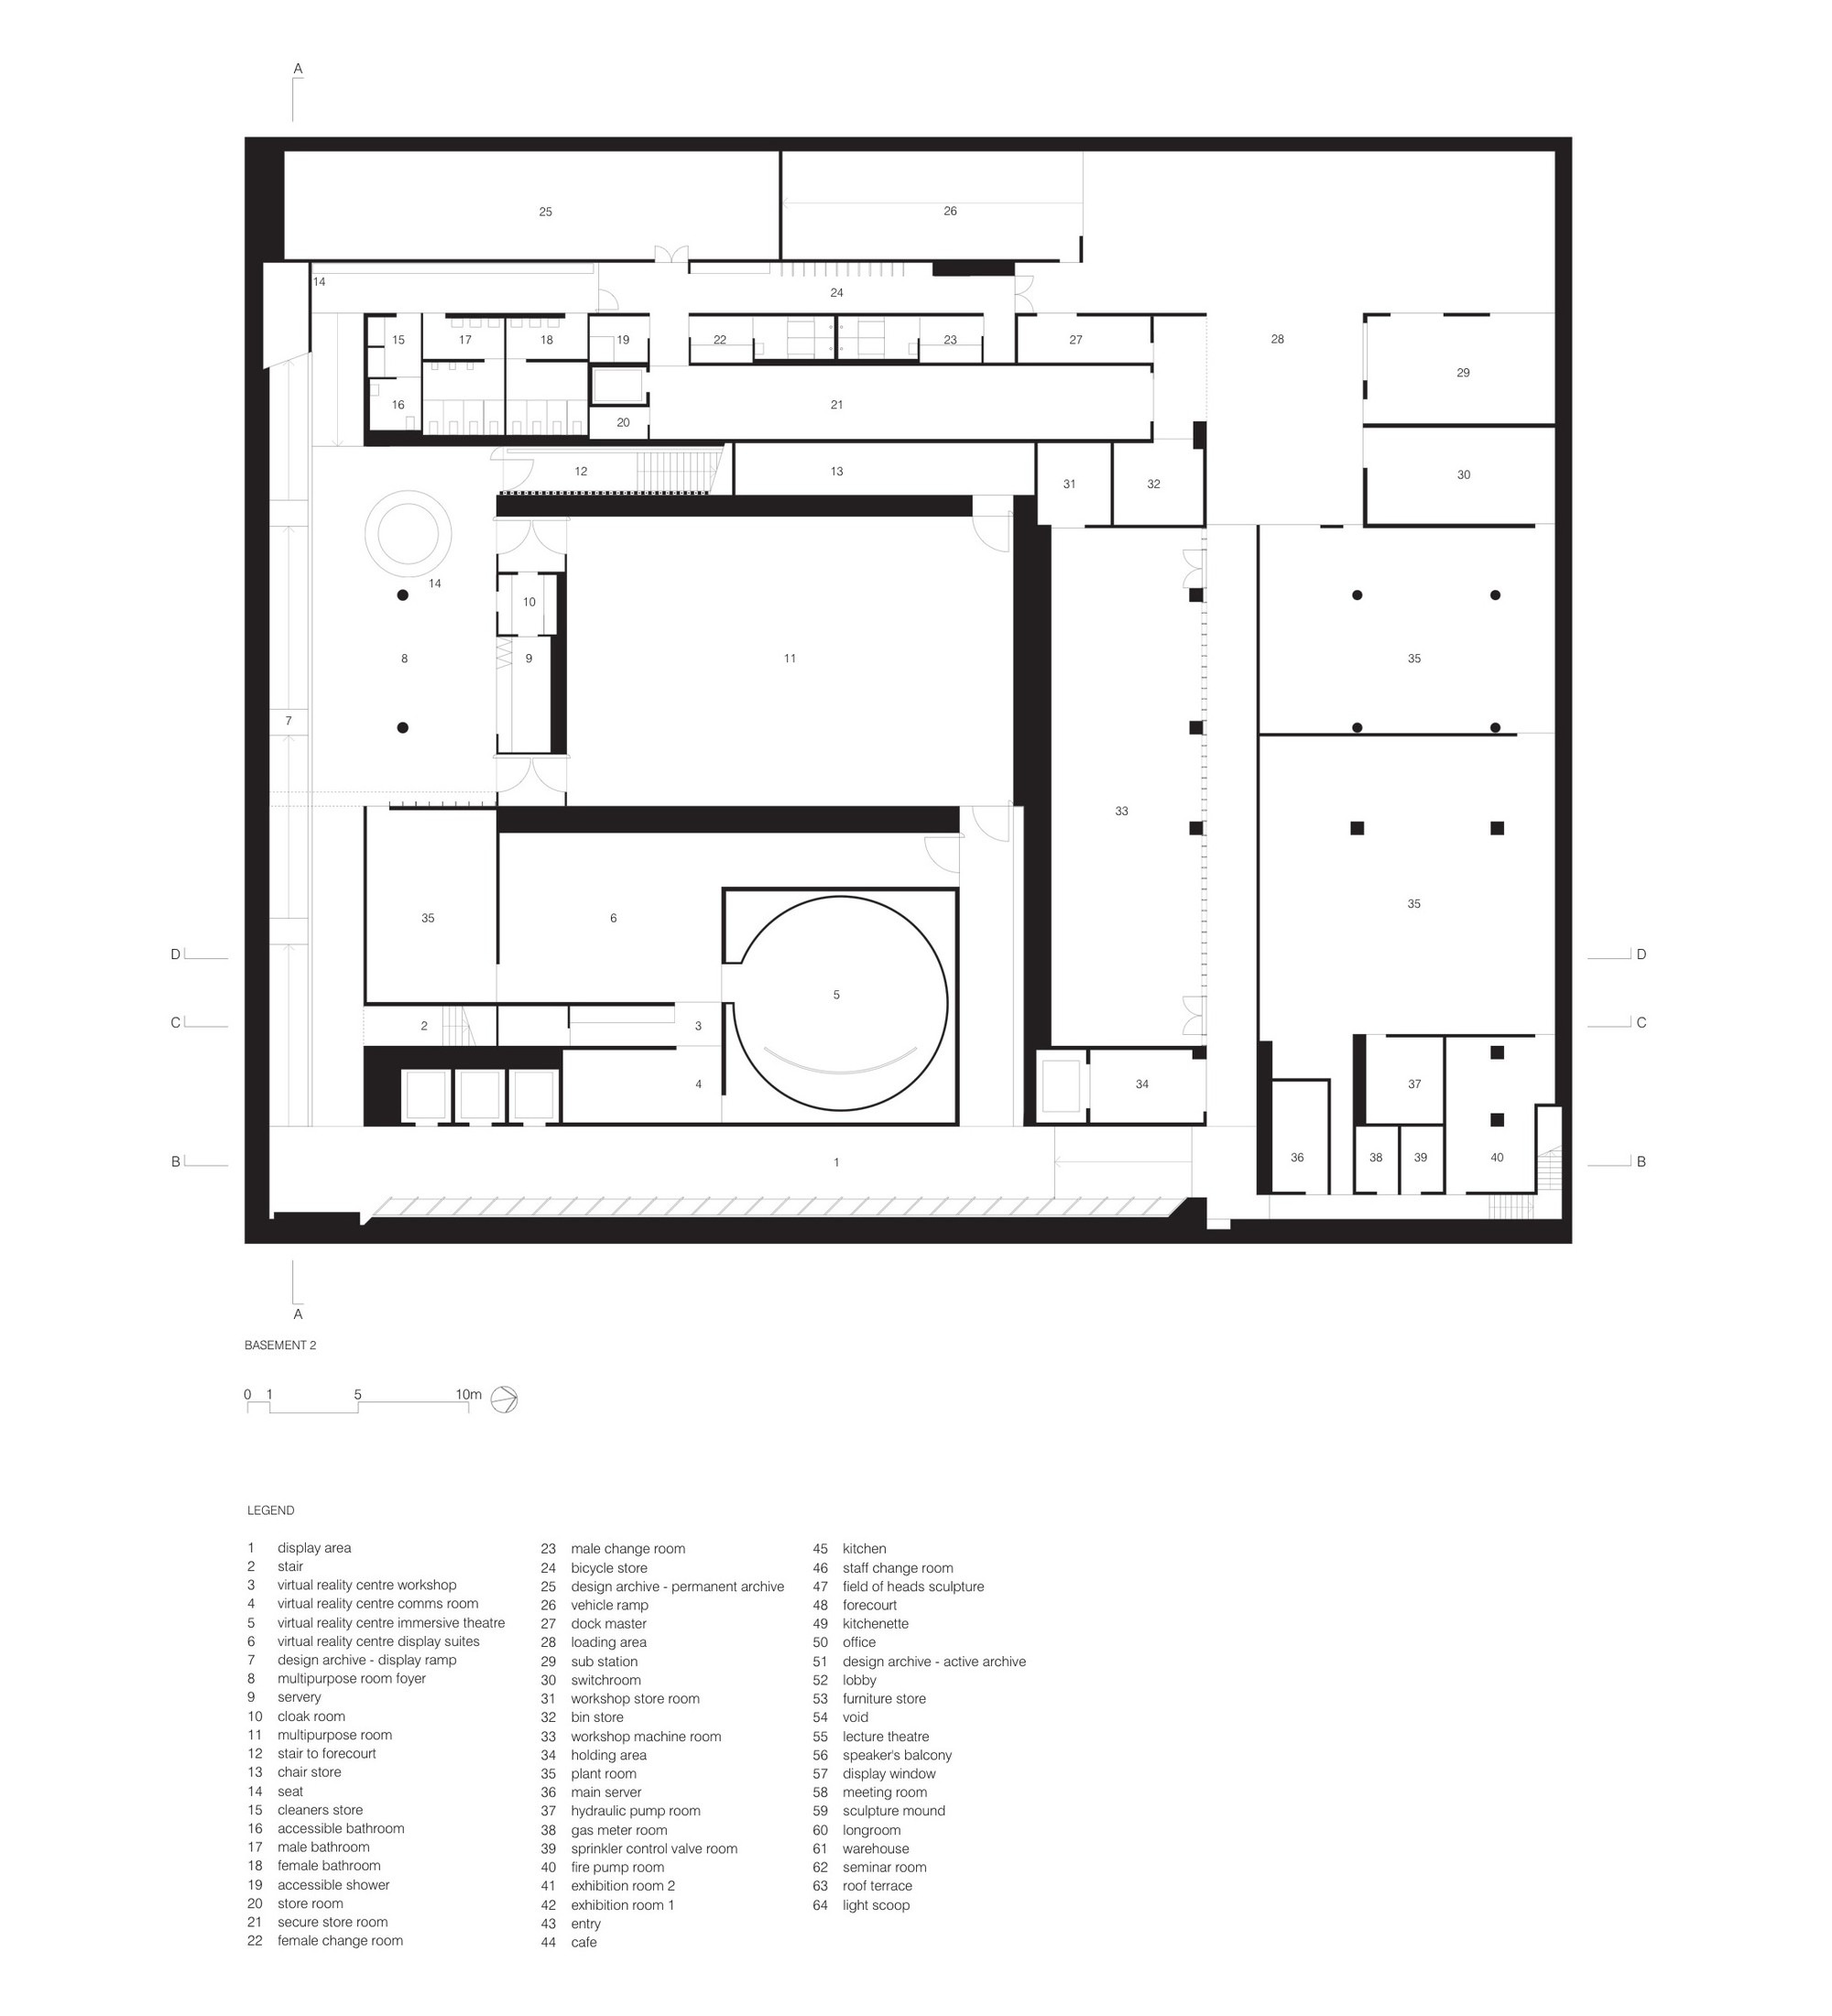 Basement 02 Floor Plan